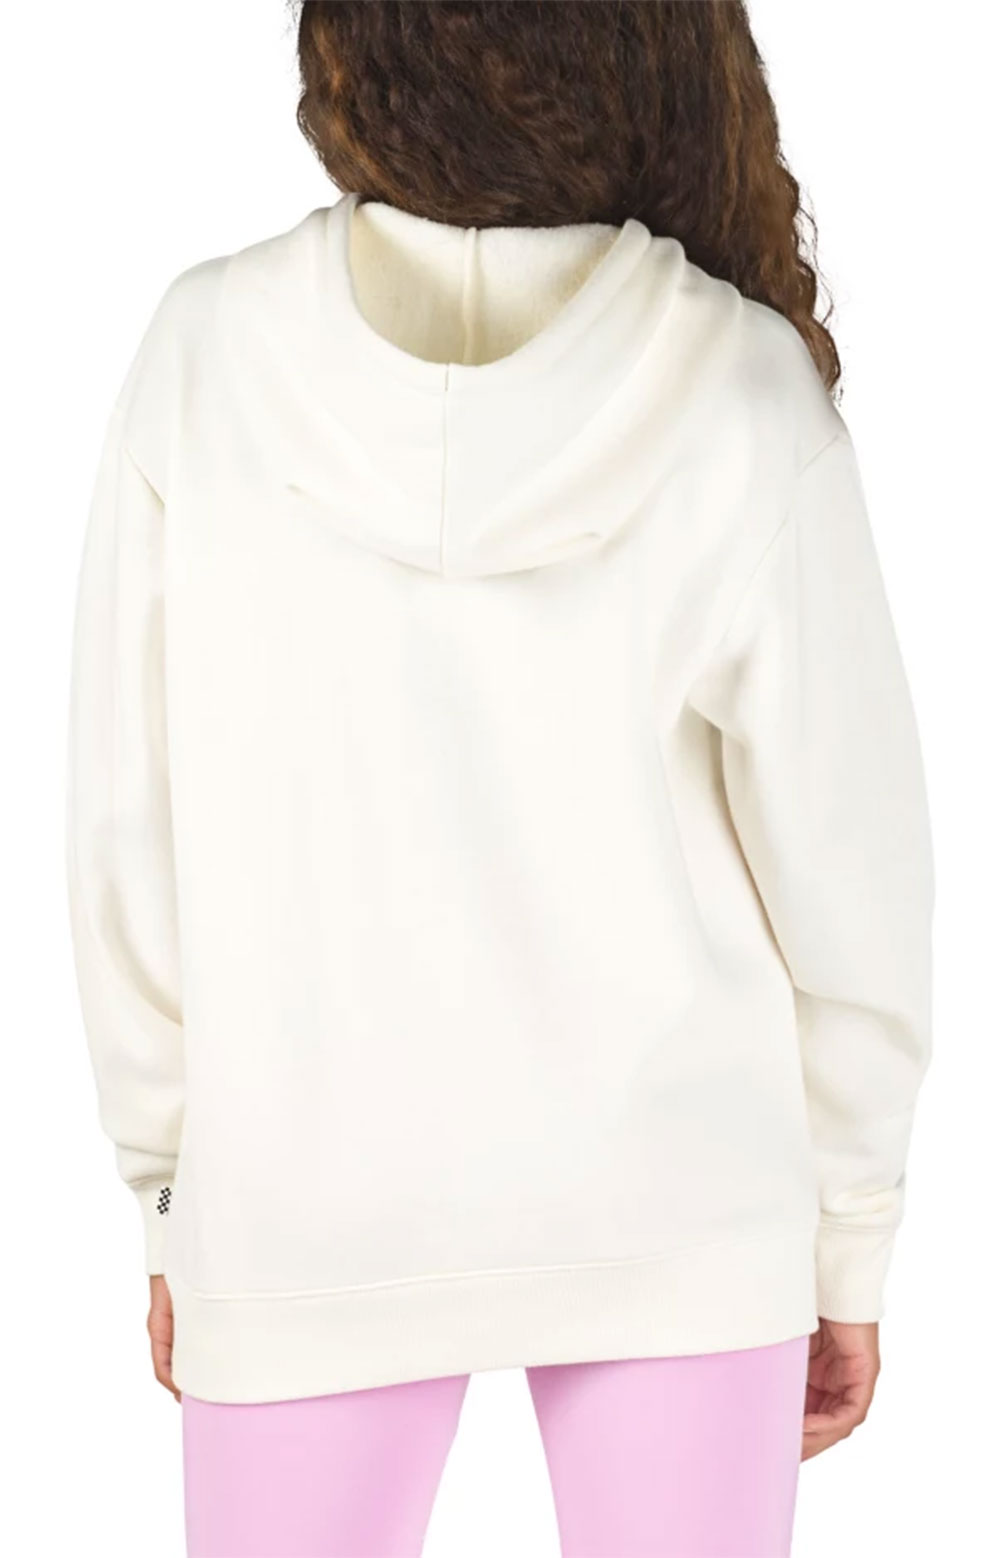 Califas Boxed In Pullover Hoodie - Marshmallow 3